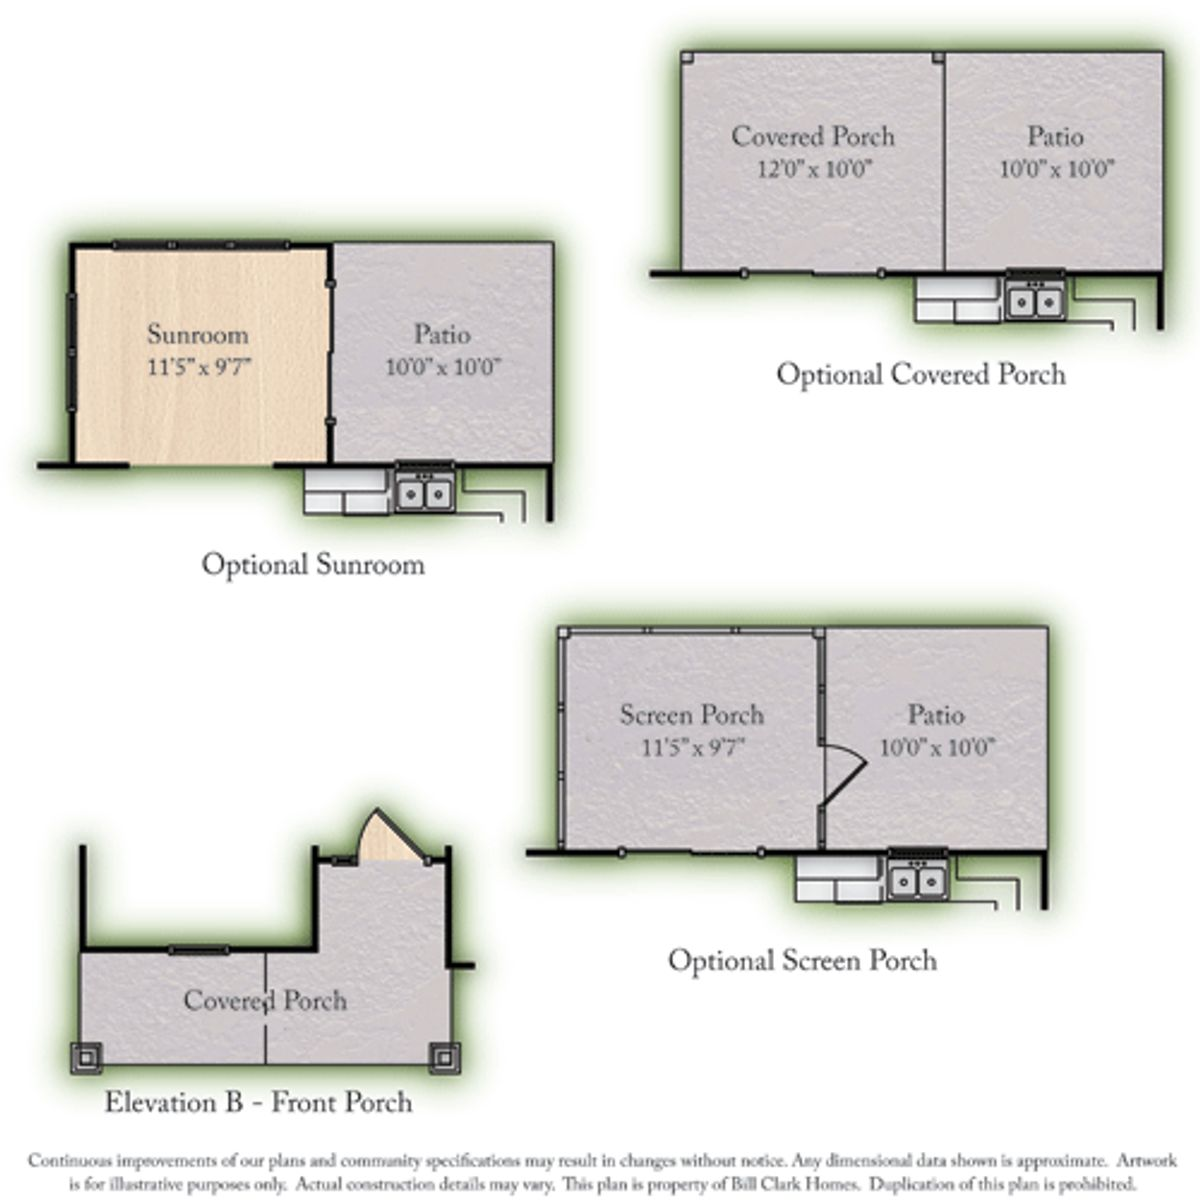 The Turner Options at Arbor Hills South II